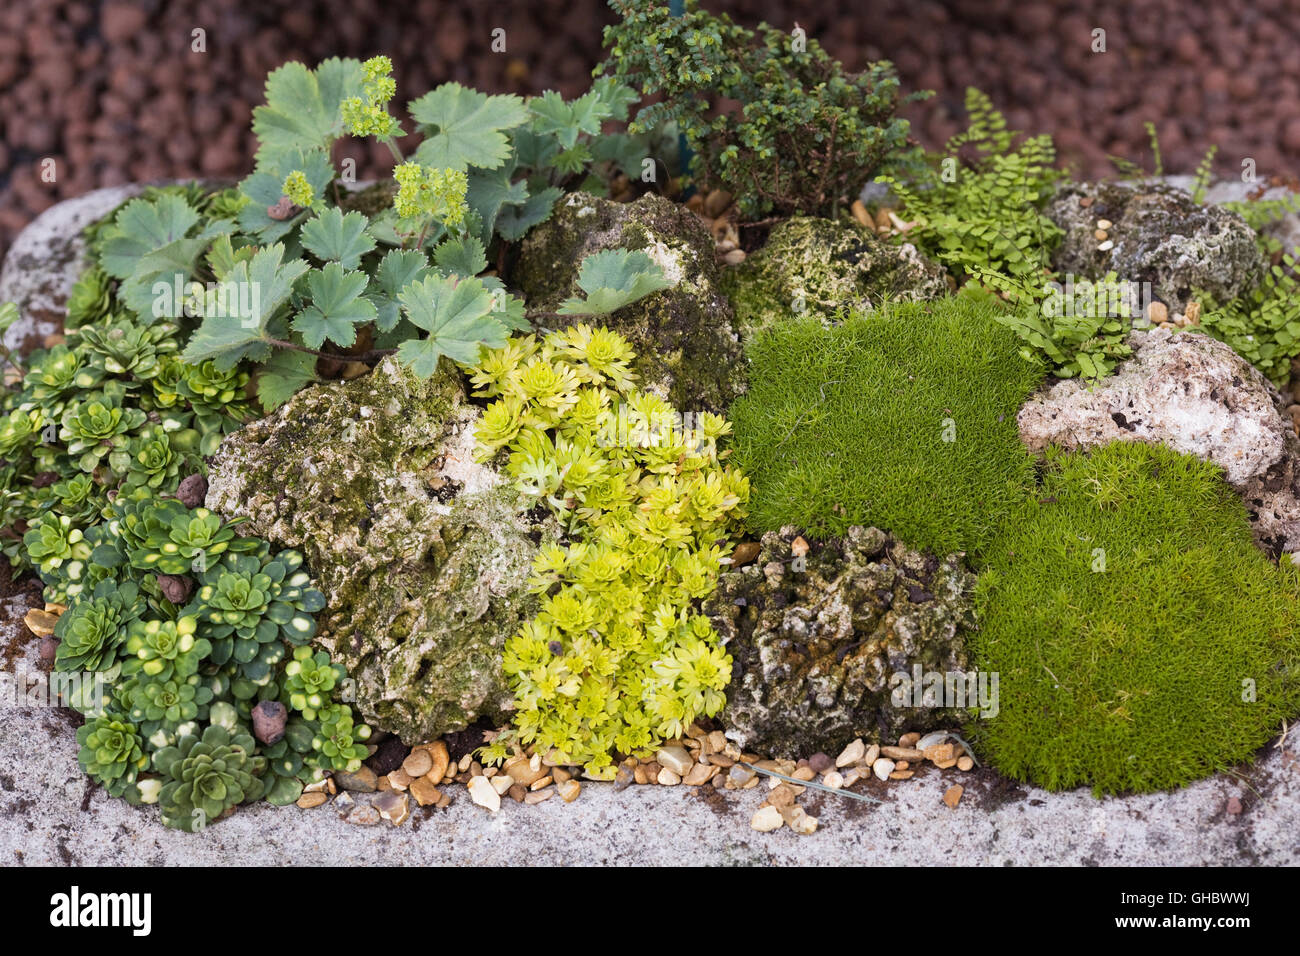 Trough planted with alpine plants. - Stock Image